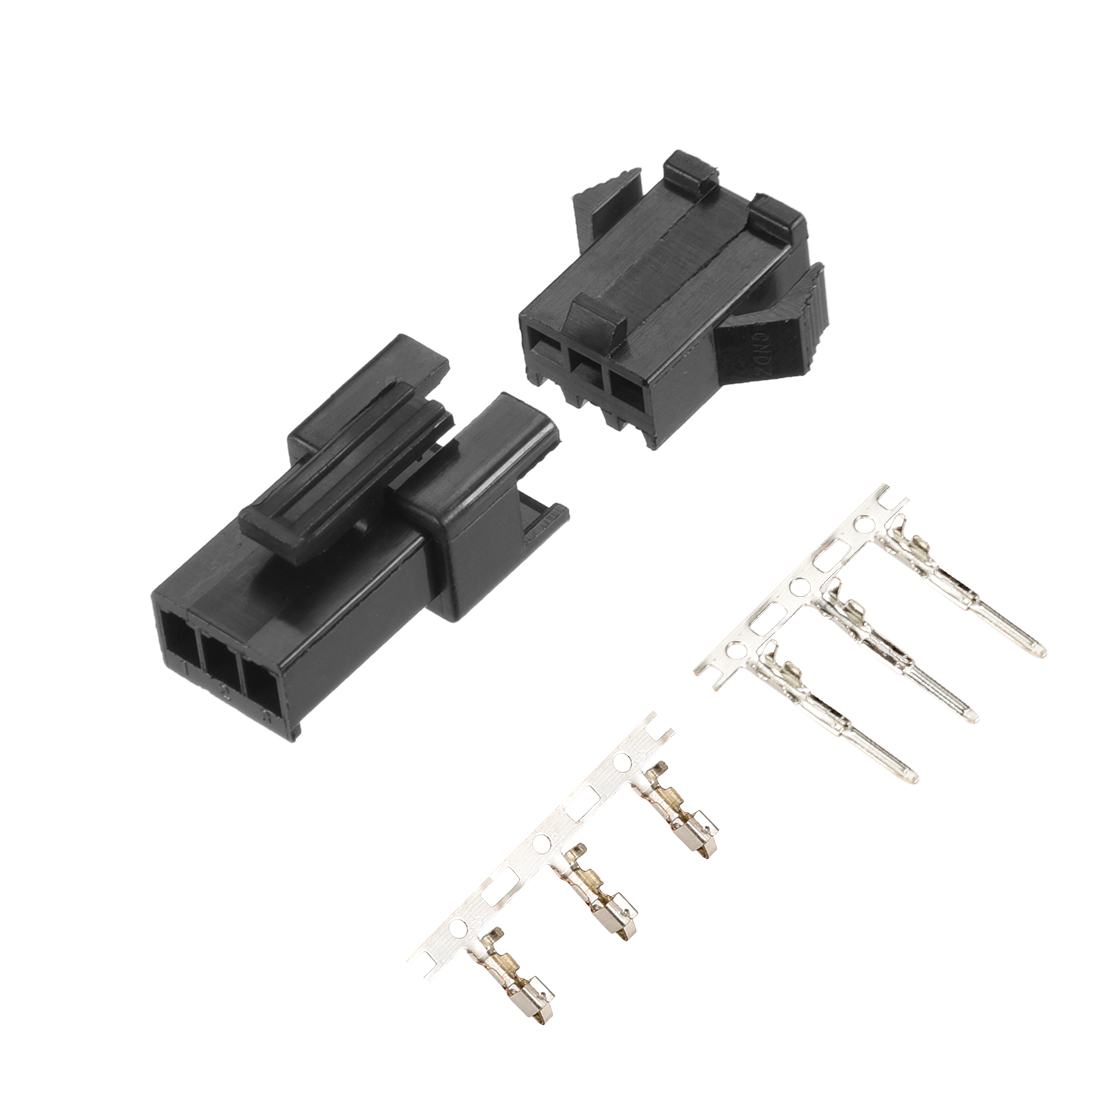 15 Set JST SM 2 Pin Battery LED Power Connector Male Housing+Female+Terminal Pin